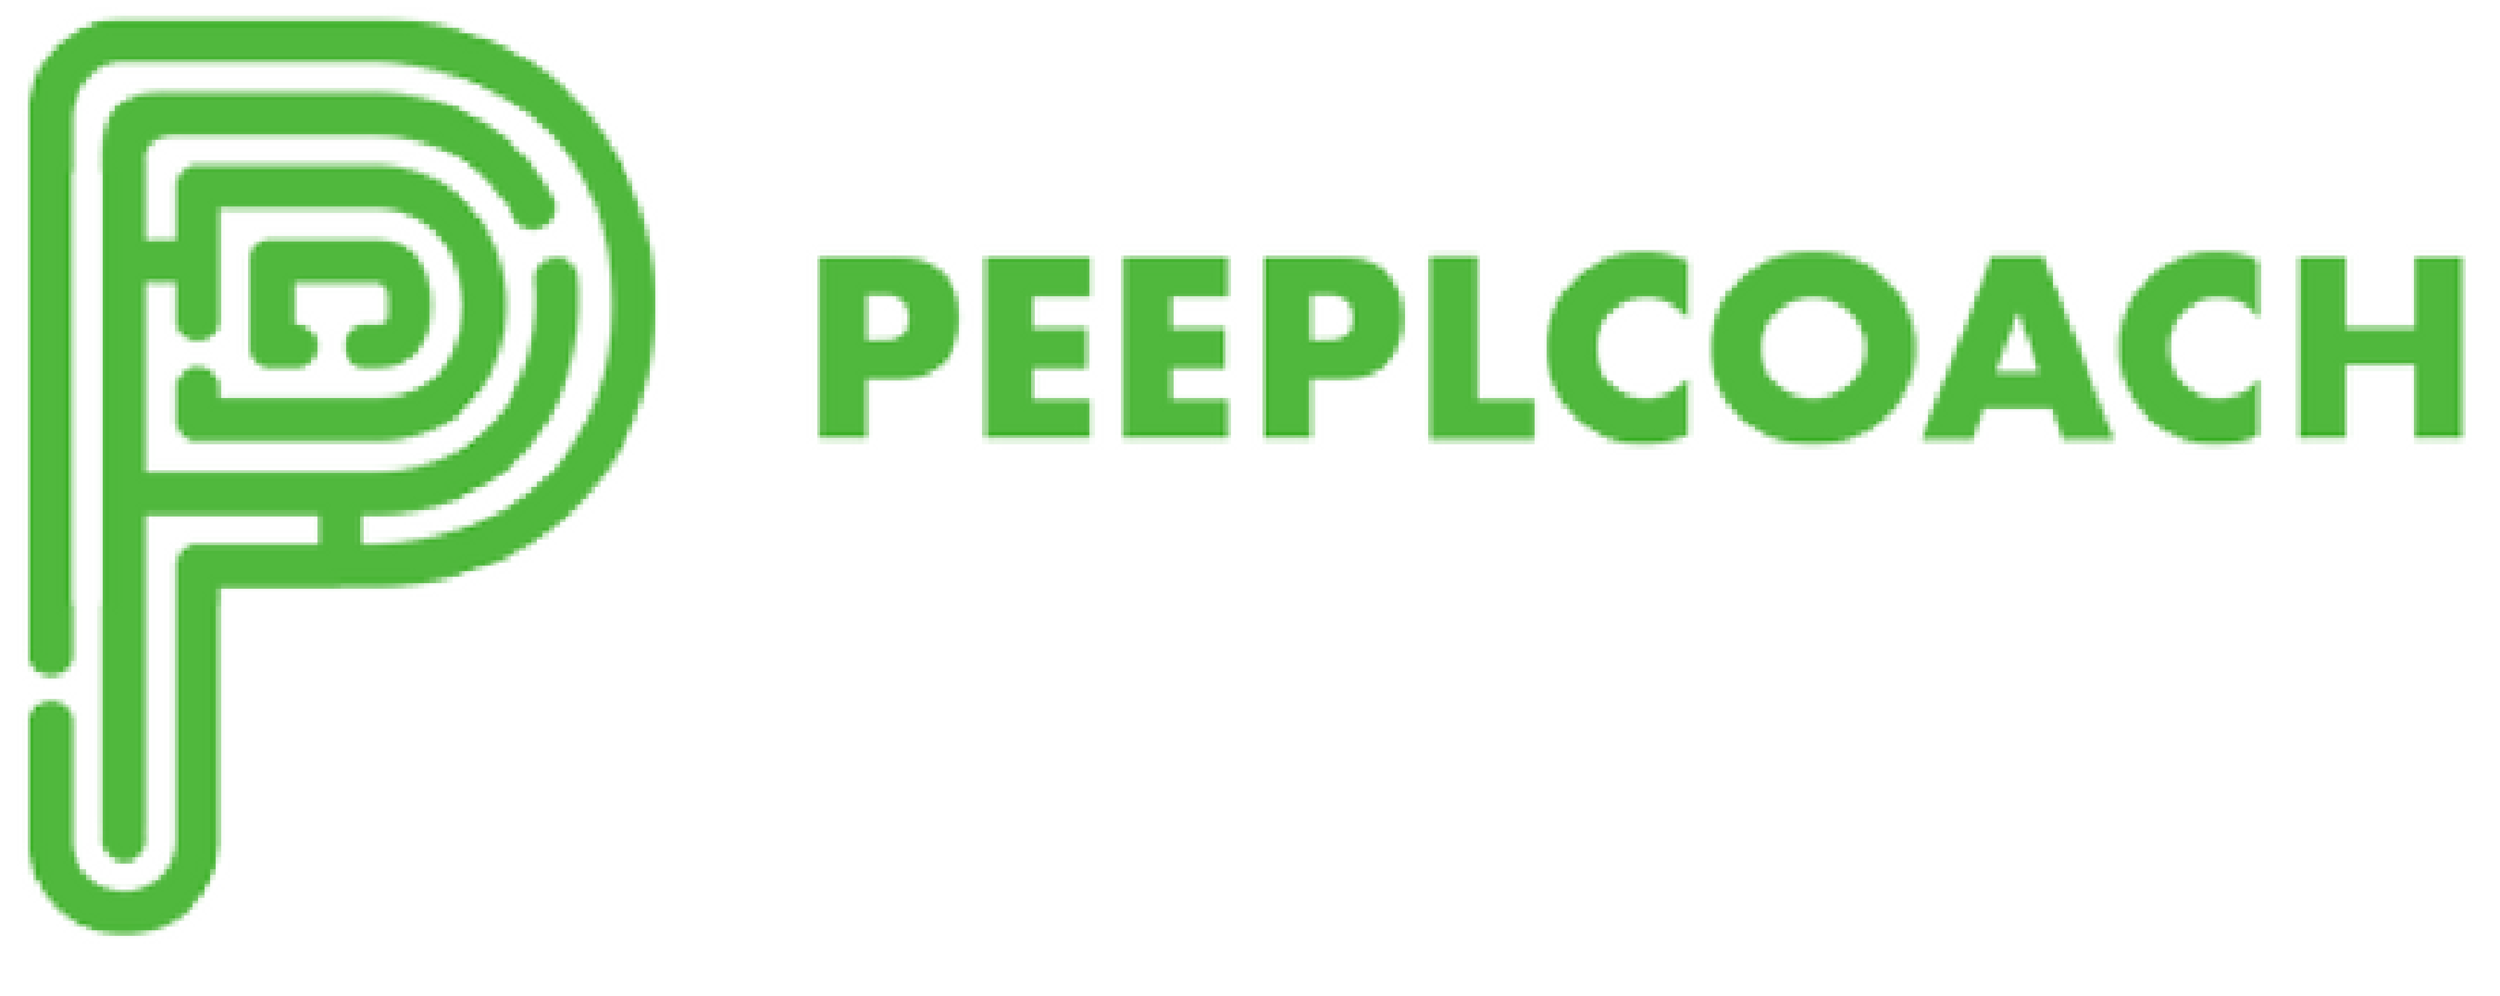 Peeplcoach-01.png